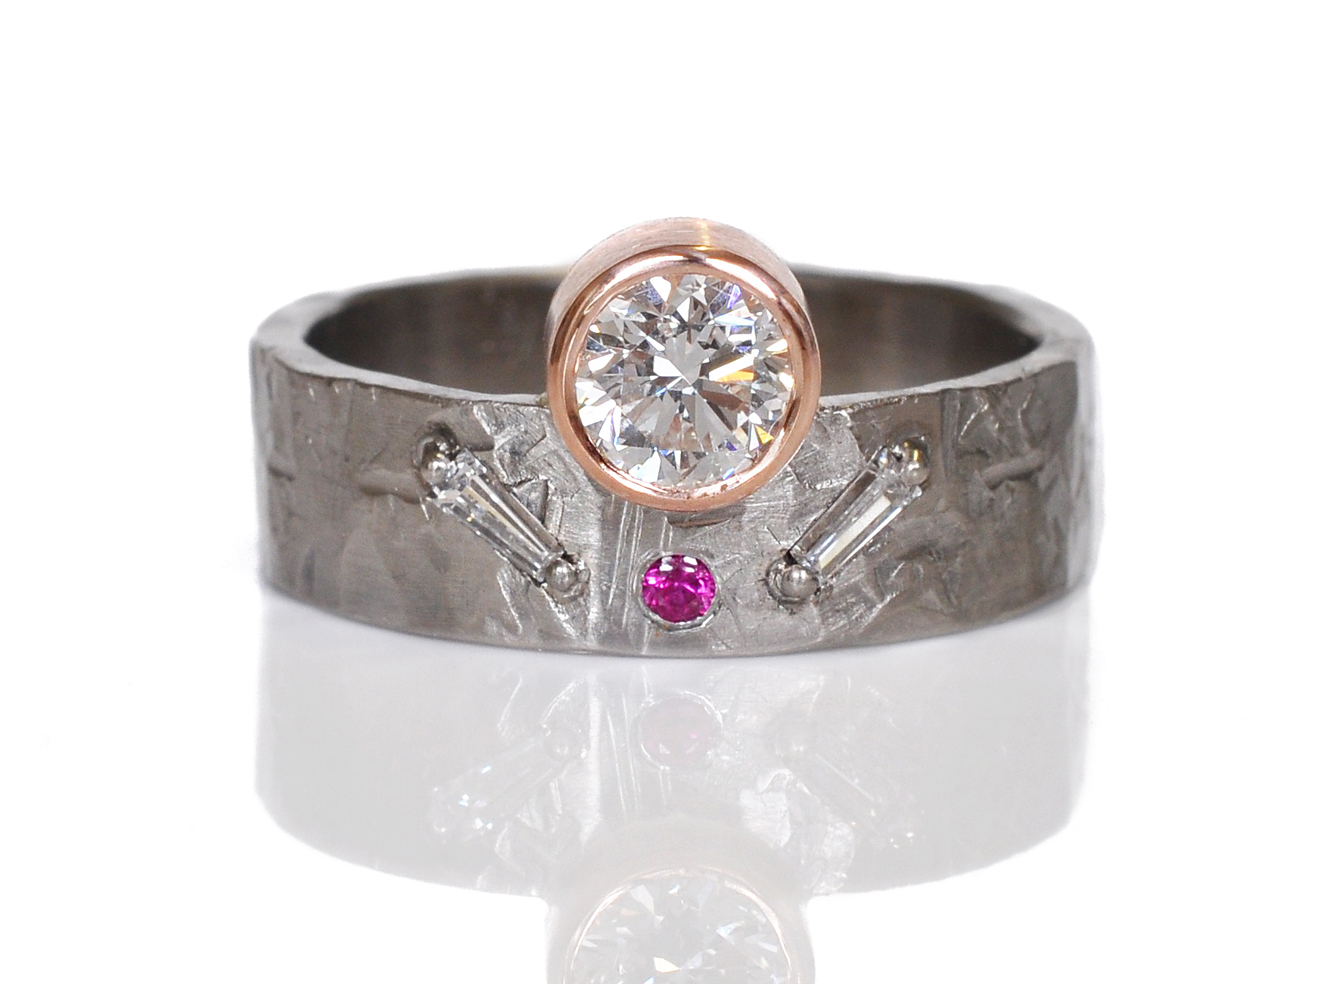 This unique beauty was created with the stones from Cynthia's mother's ring. The original ring was a classic vintage piece, scroll down to see, but Cynthia wanted something more funky to fit her style. I love giving new life to old jewels. Don't let your diamonds go to waste in your jewelry box ;)